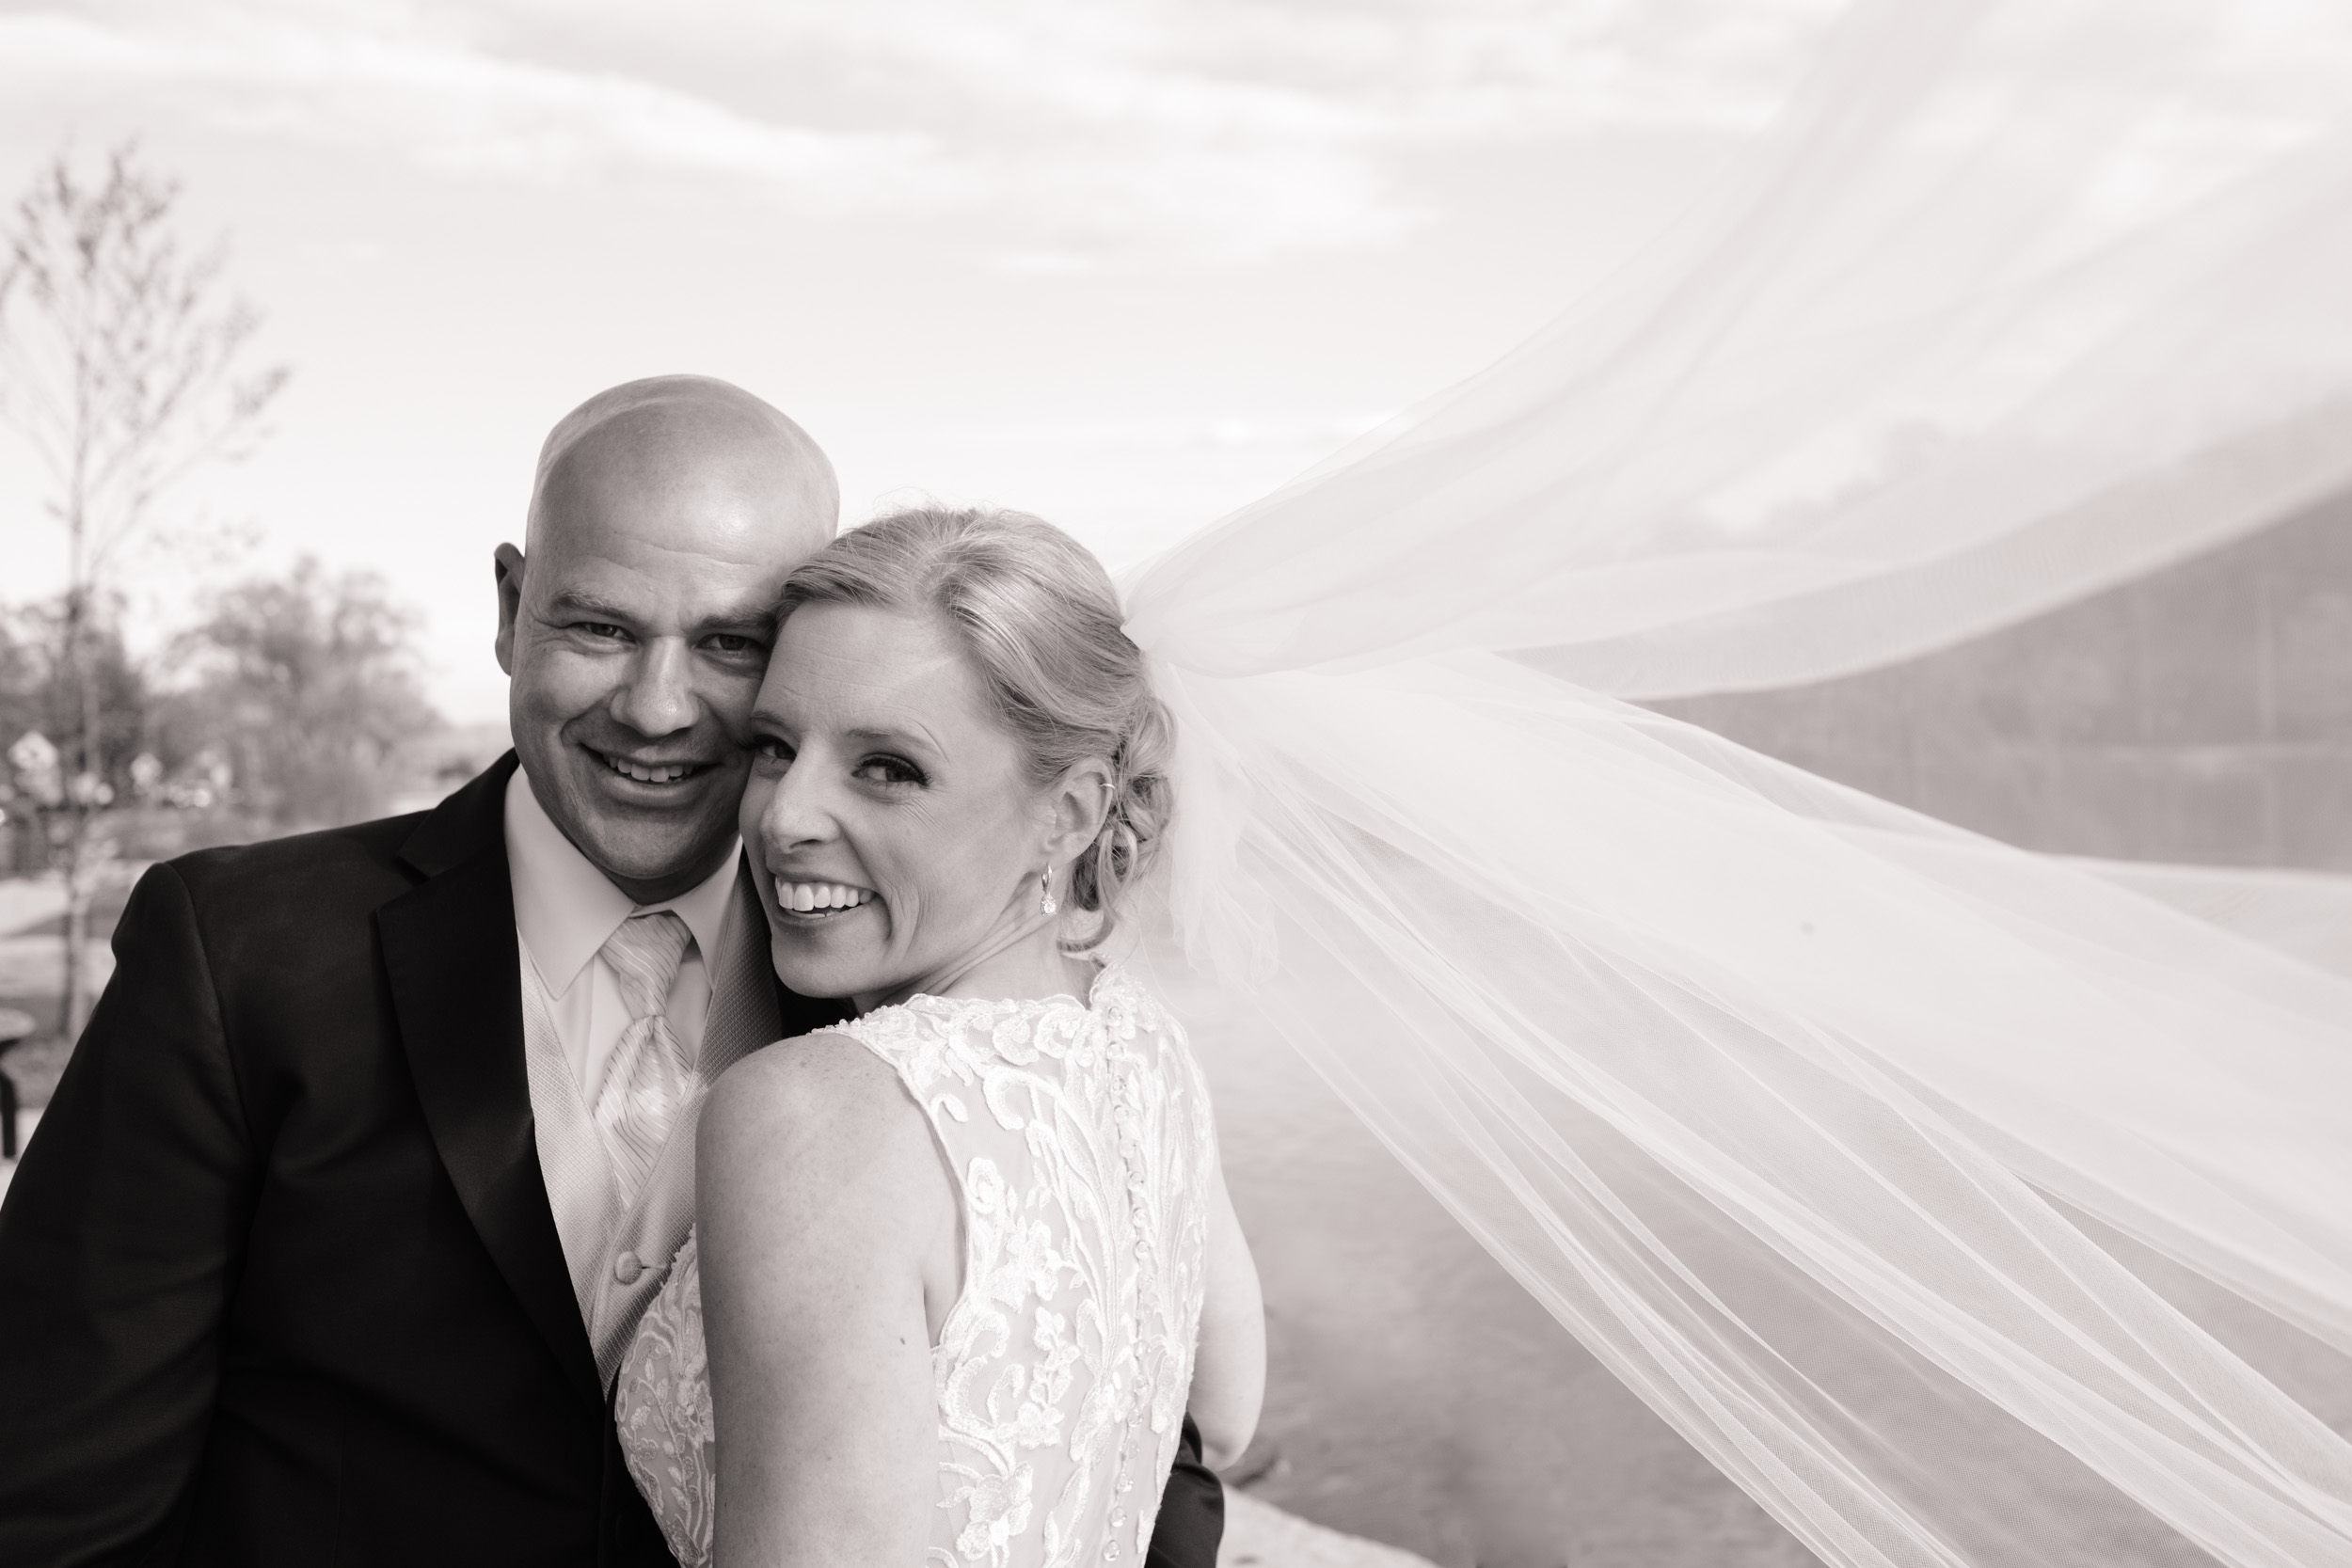 laughing portrait on wedding day with long veil blowing in the wind